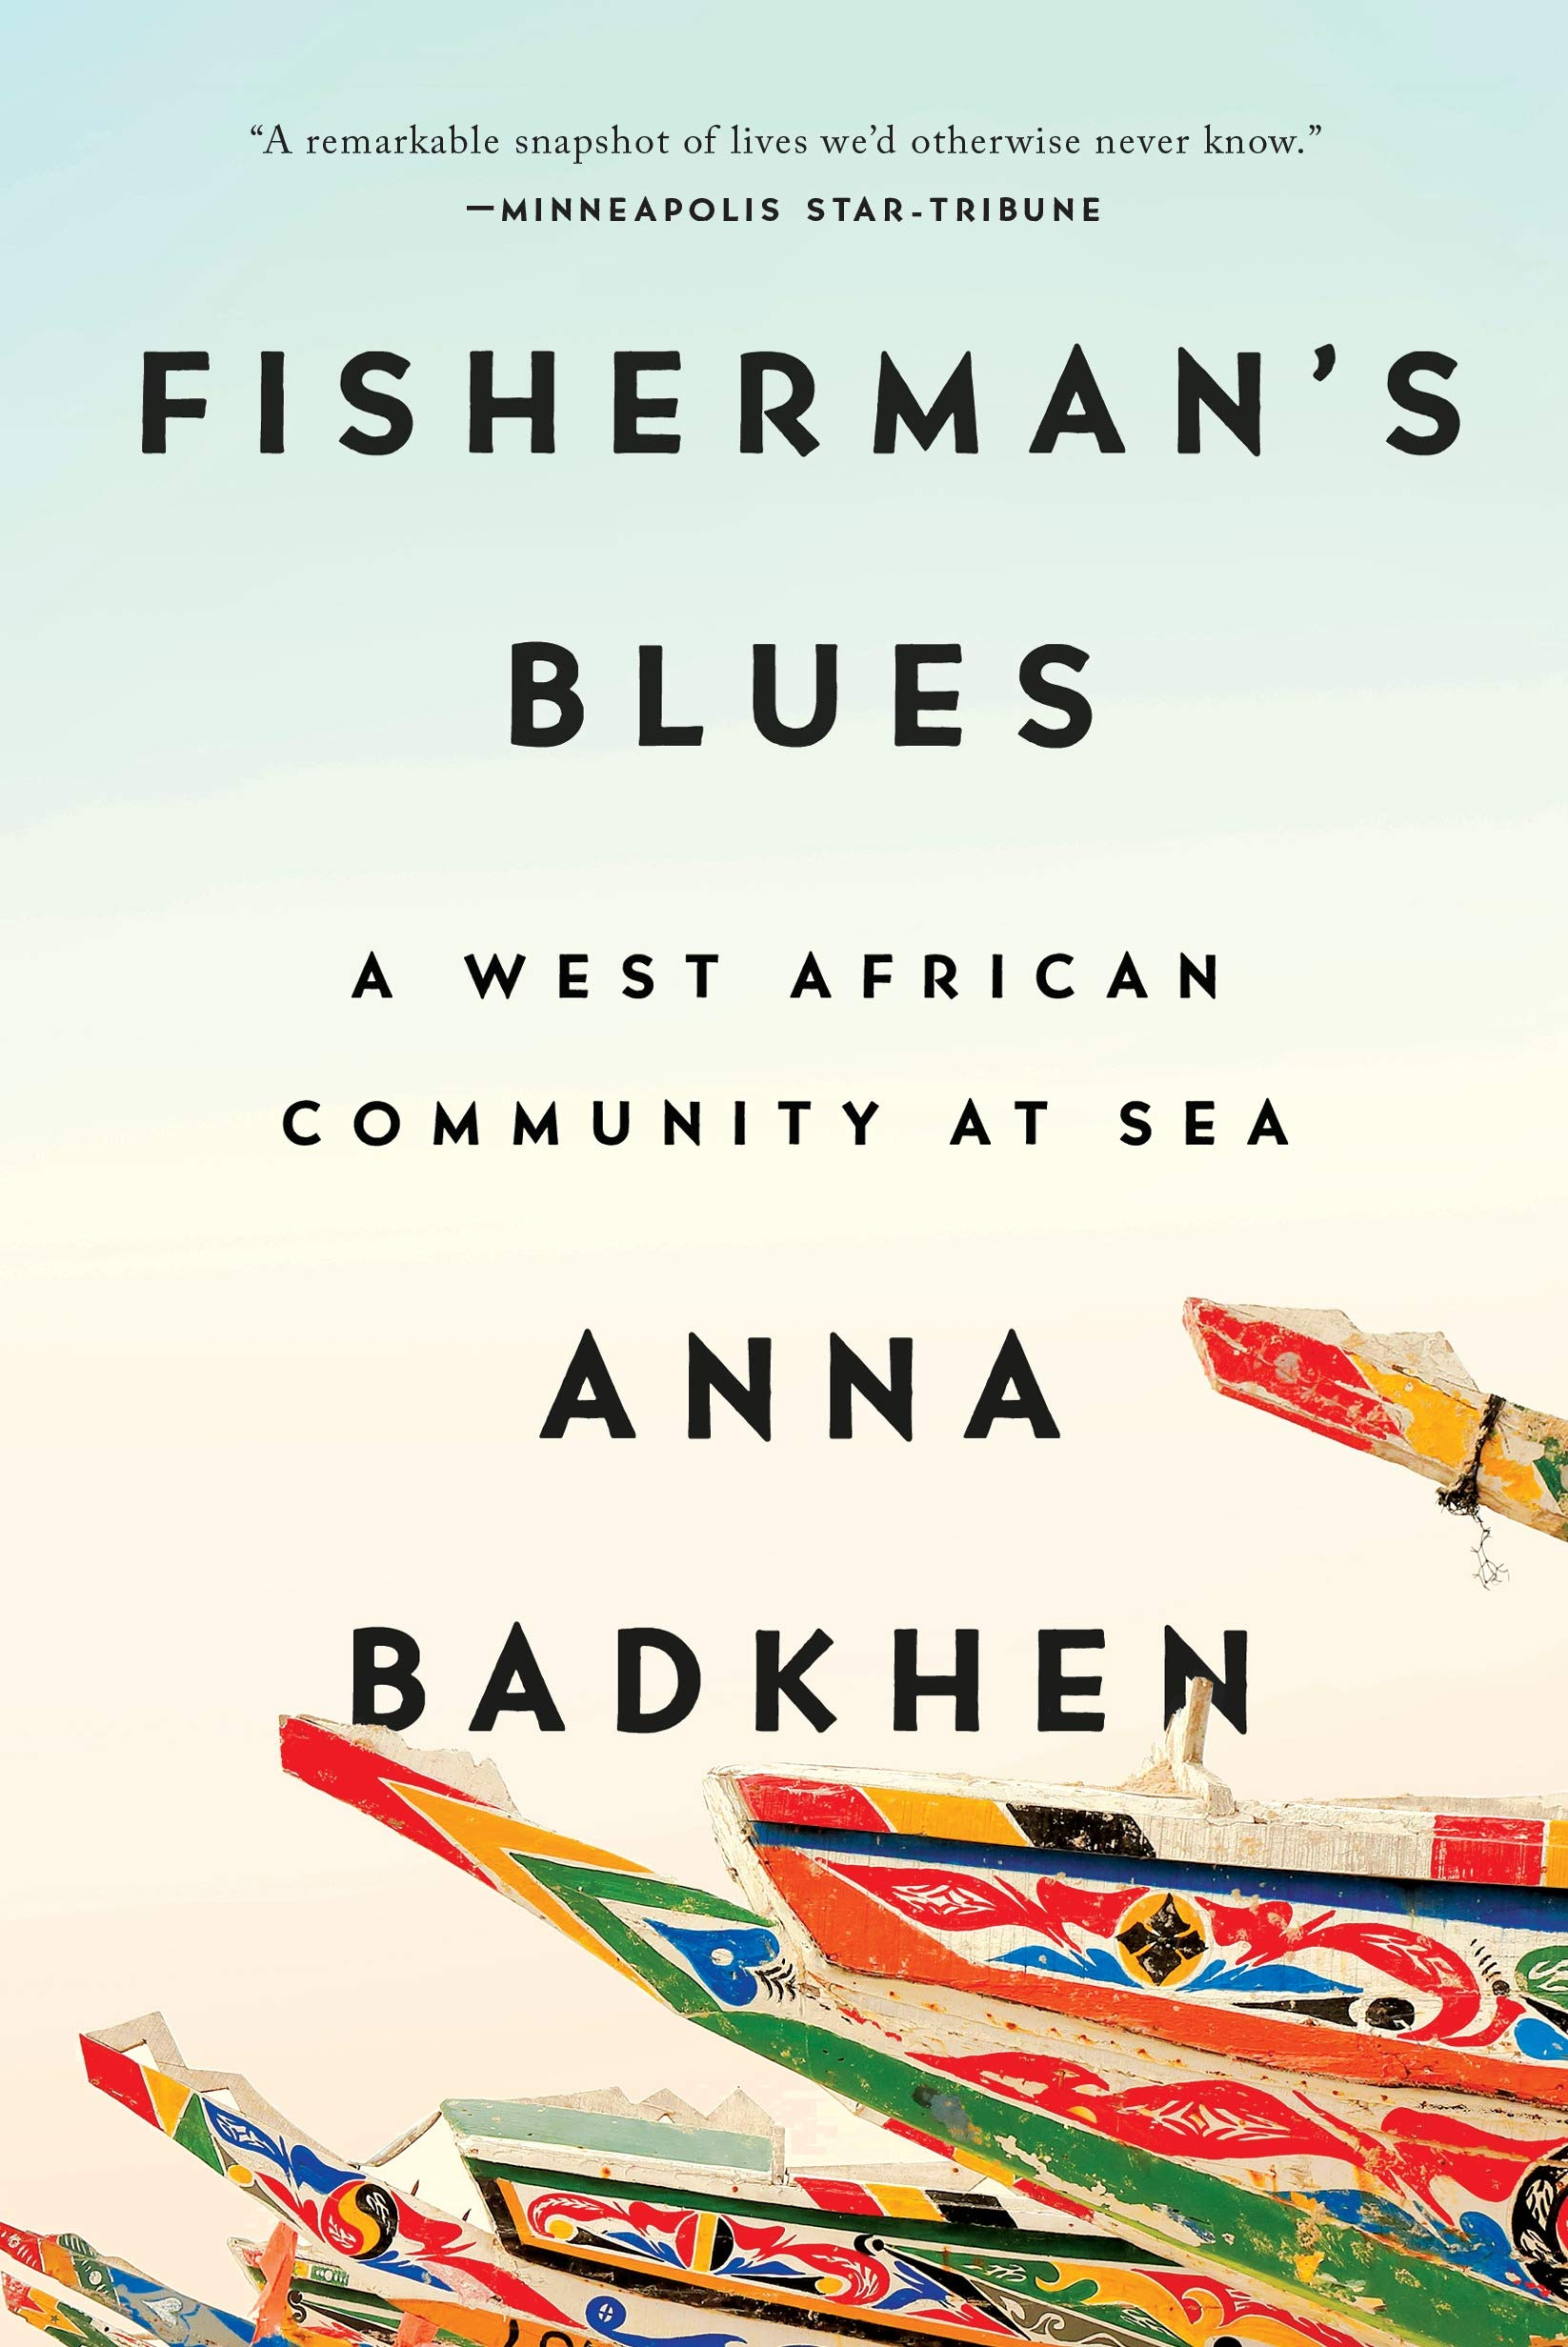 Amazon fr - Fisherman's Blues: A West African Community at